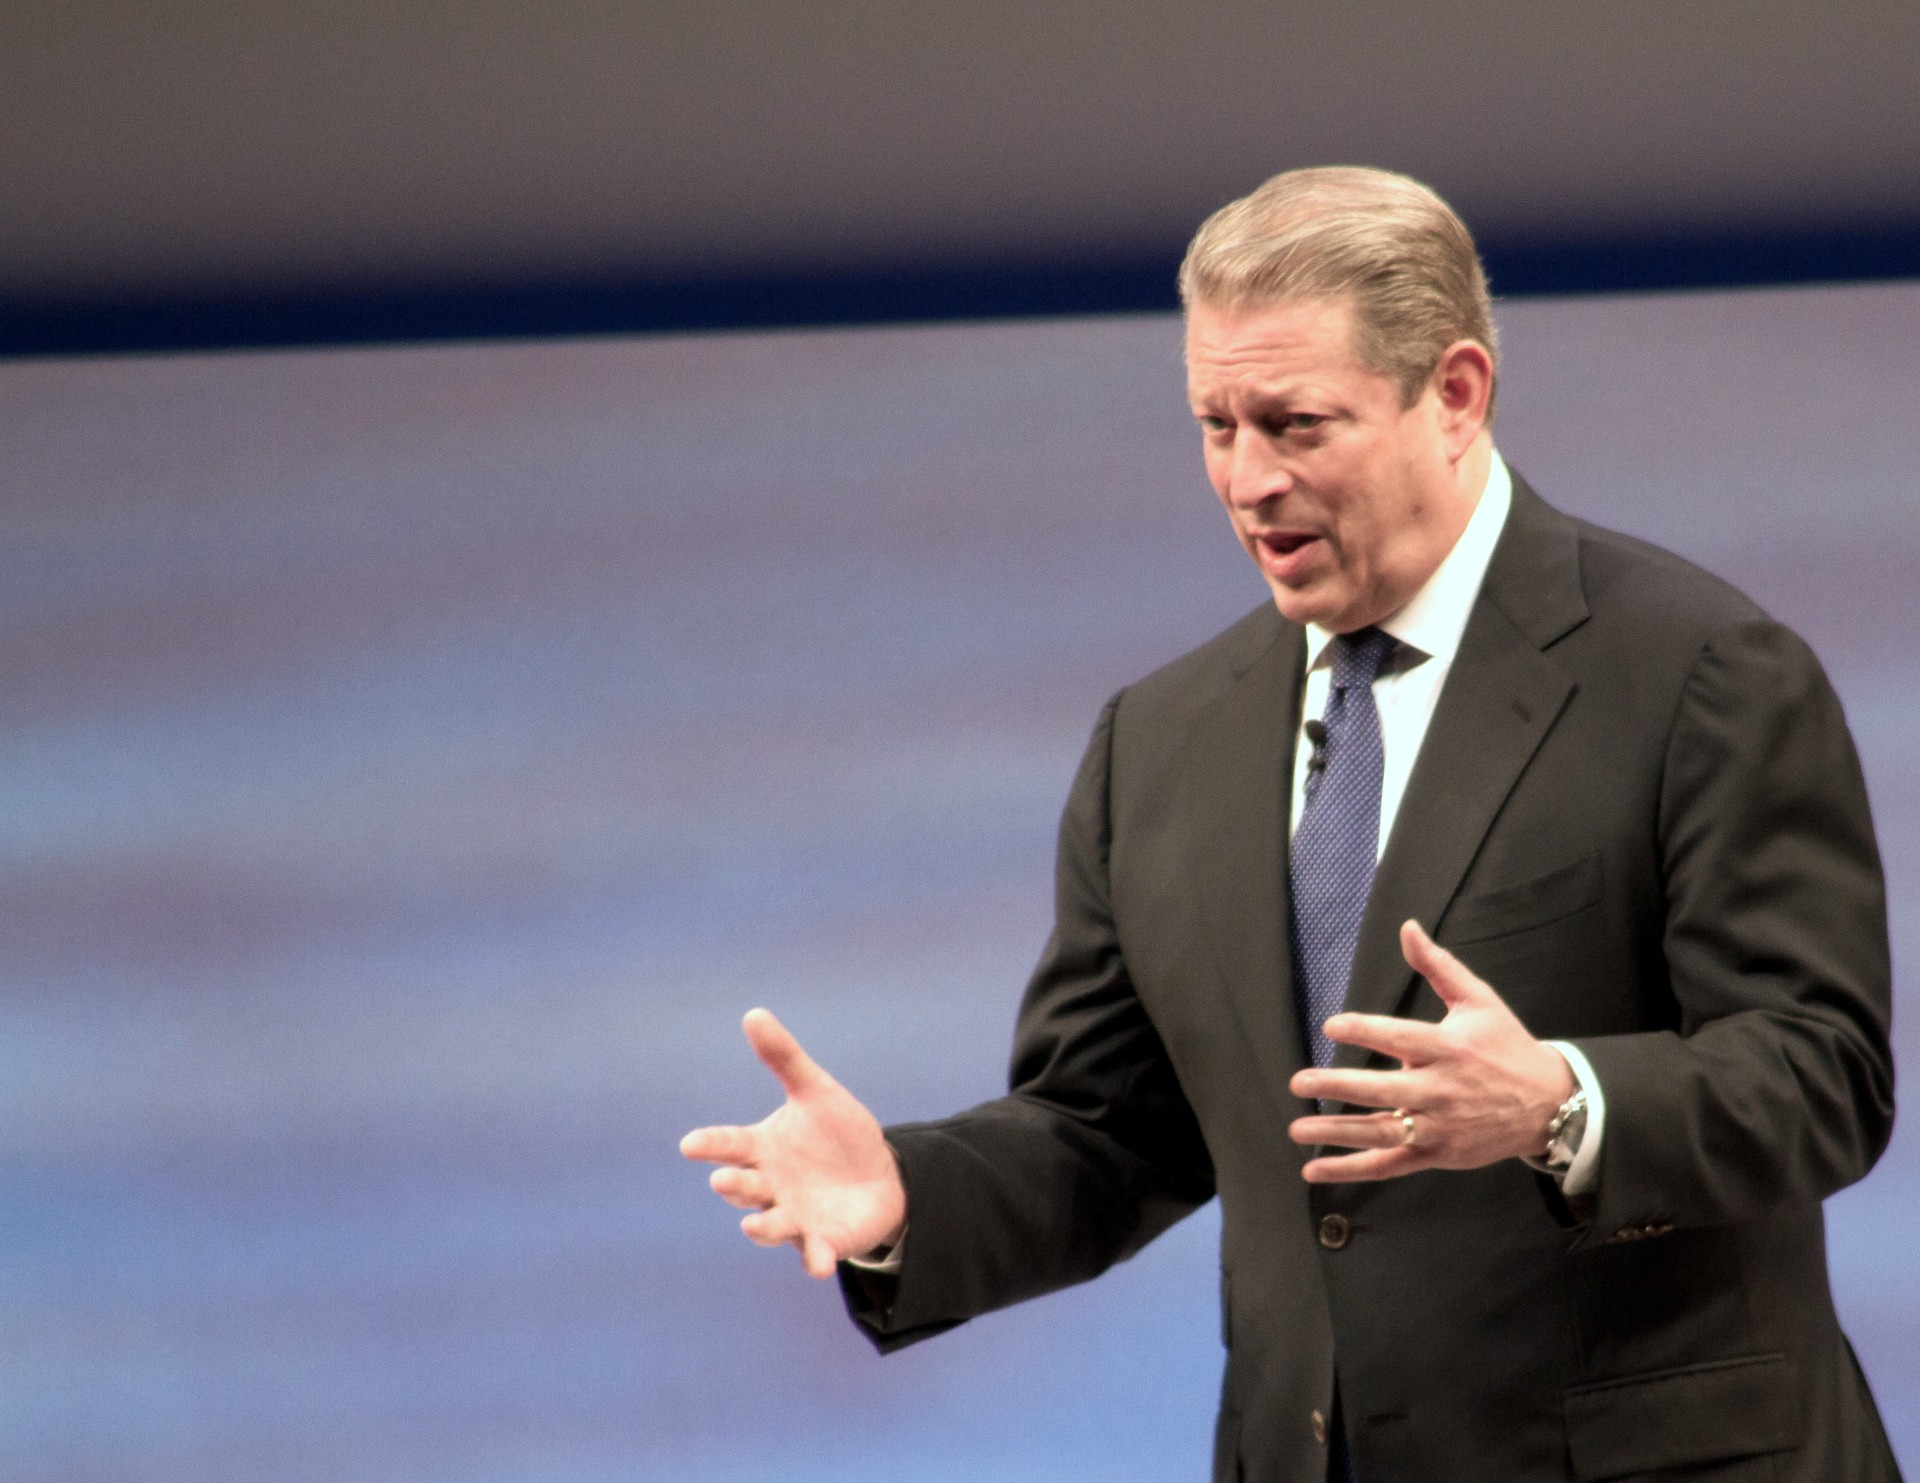 IB Environmental Systems & Societies: Al Gore - the Case for optimism